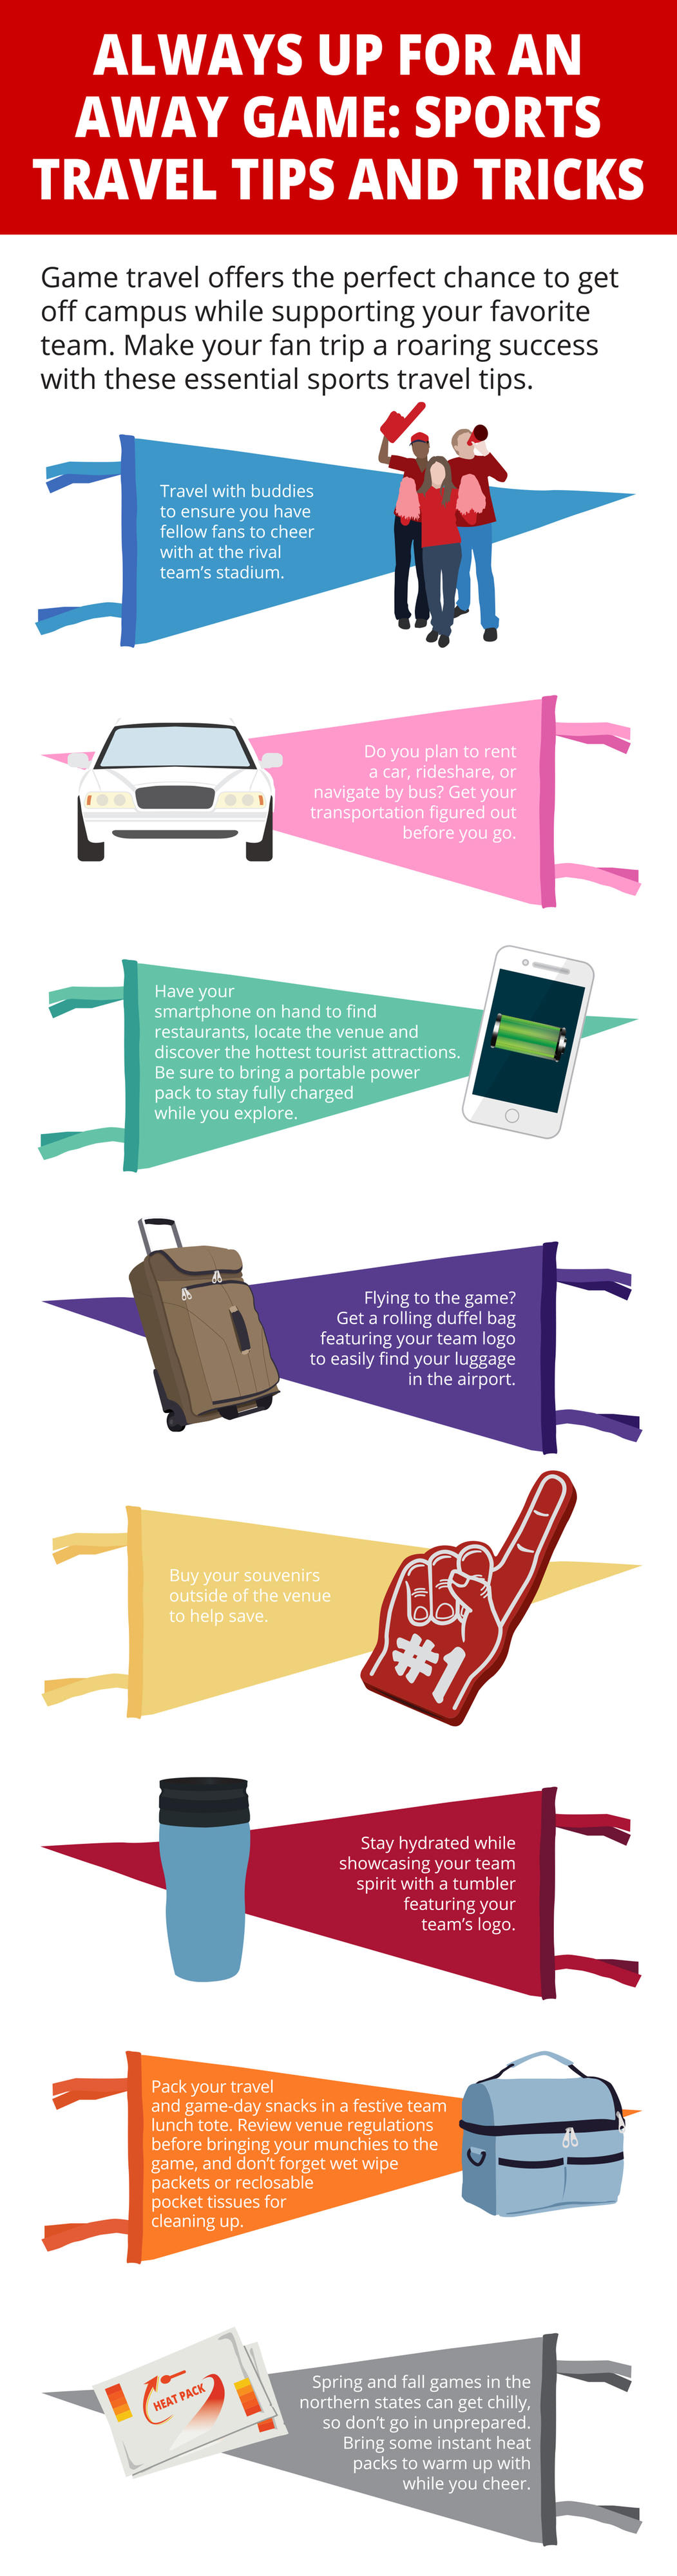 Always Up for an Away Game: Sports Travel Tips and Tricks